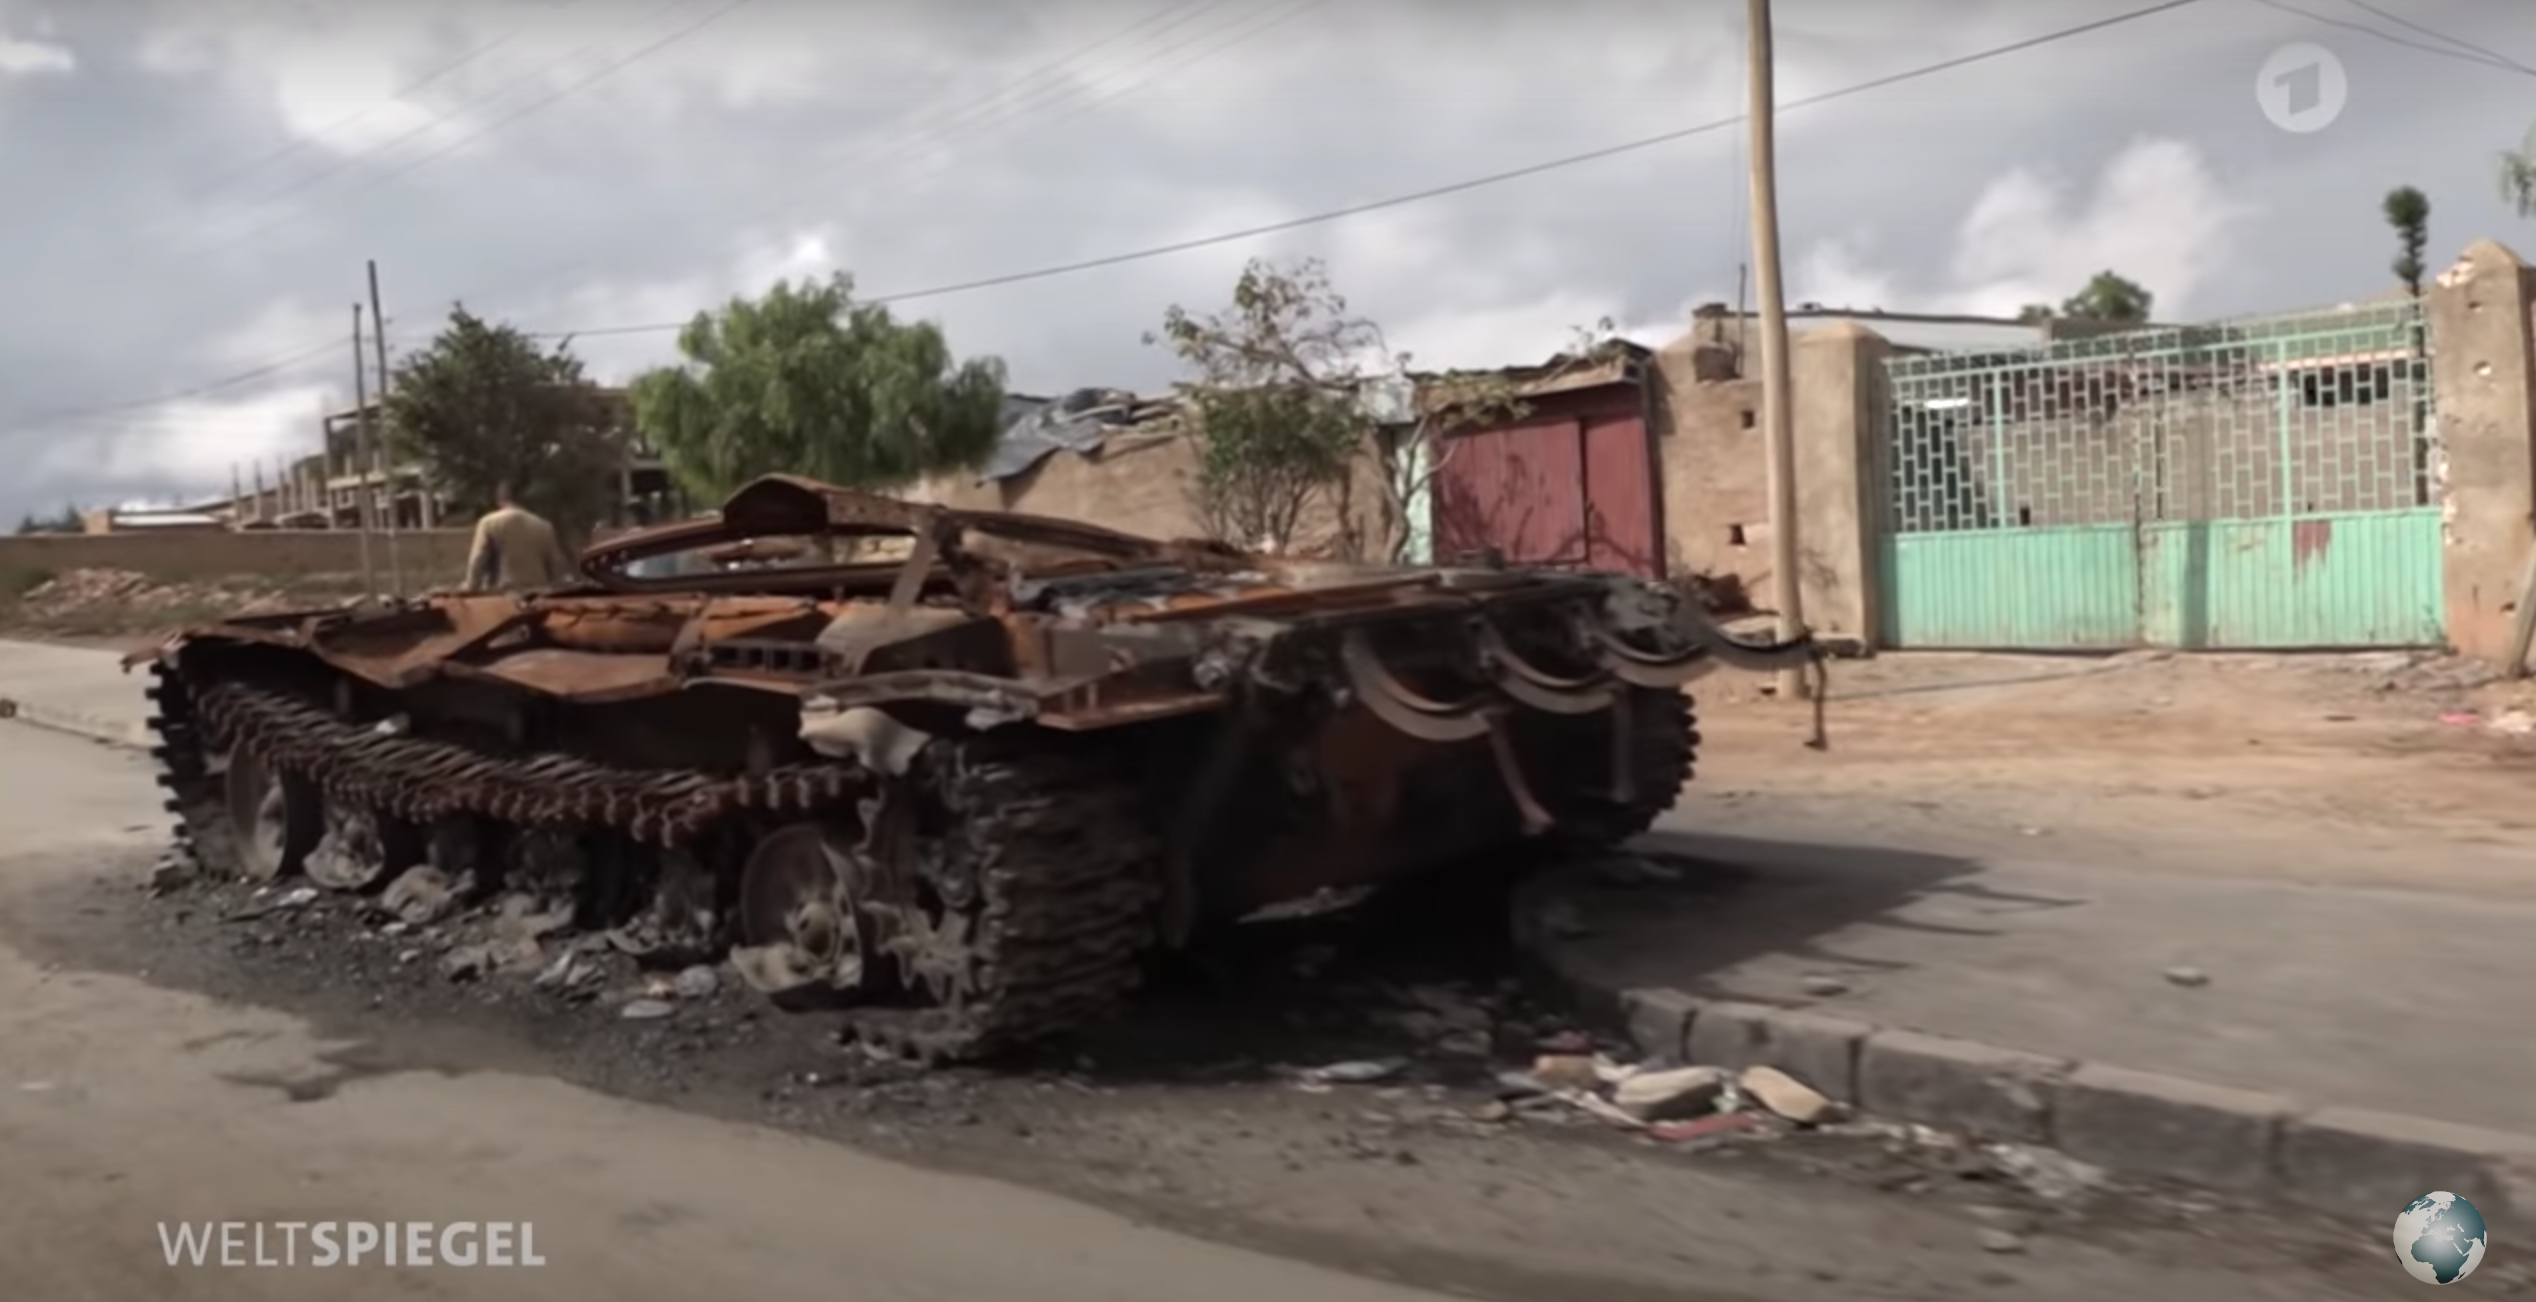 A German TV travels through a war zone: Tigray, not arriving at peace